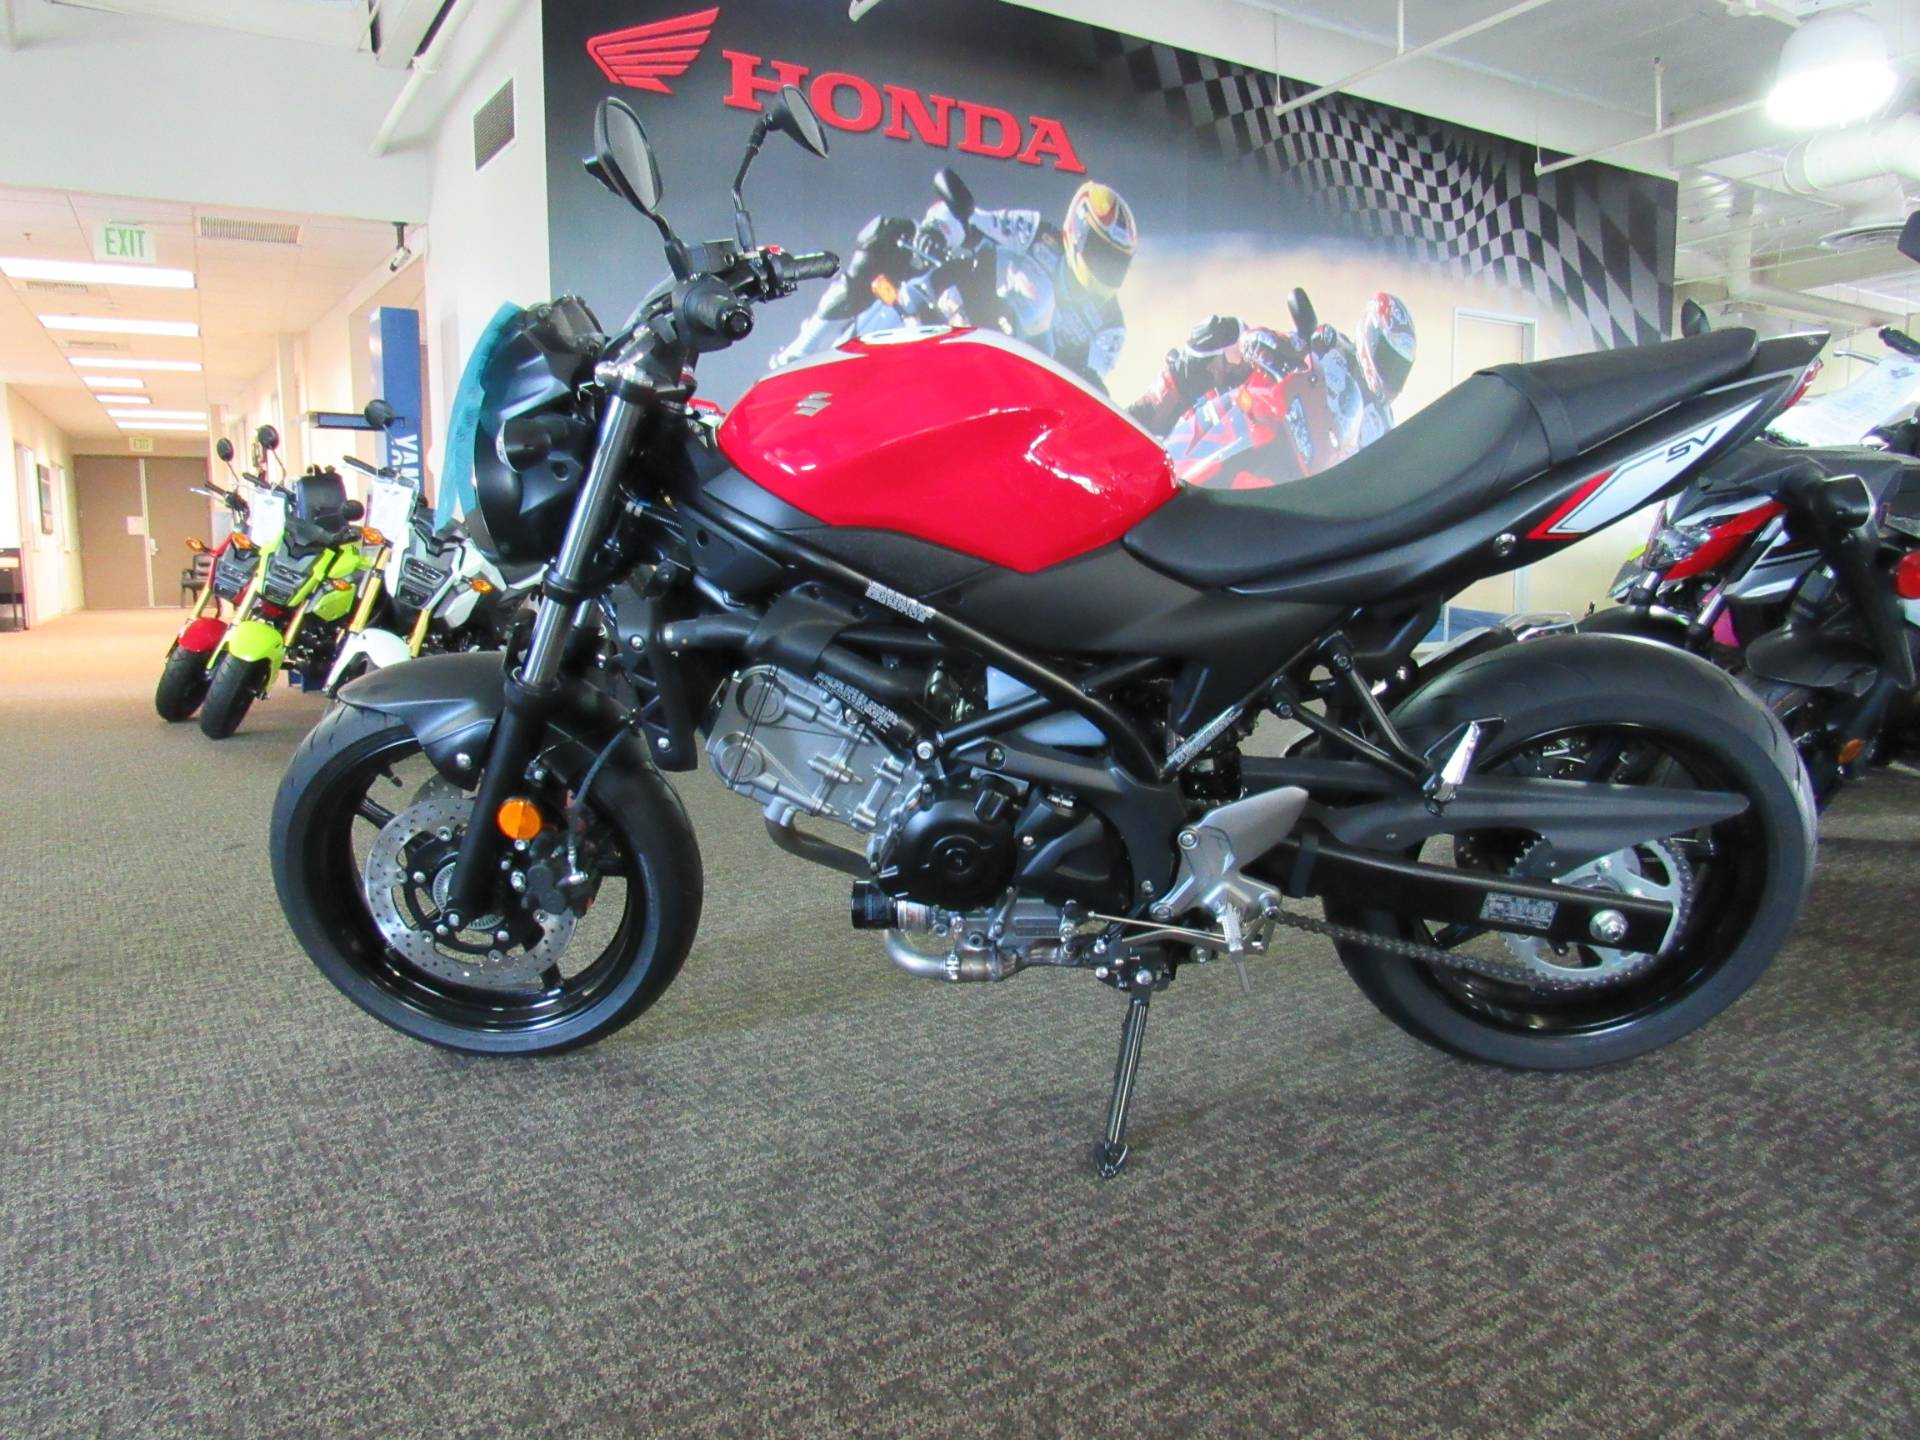 2017 Suzuki SV650 for sale 192337